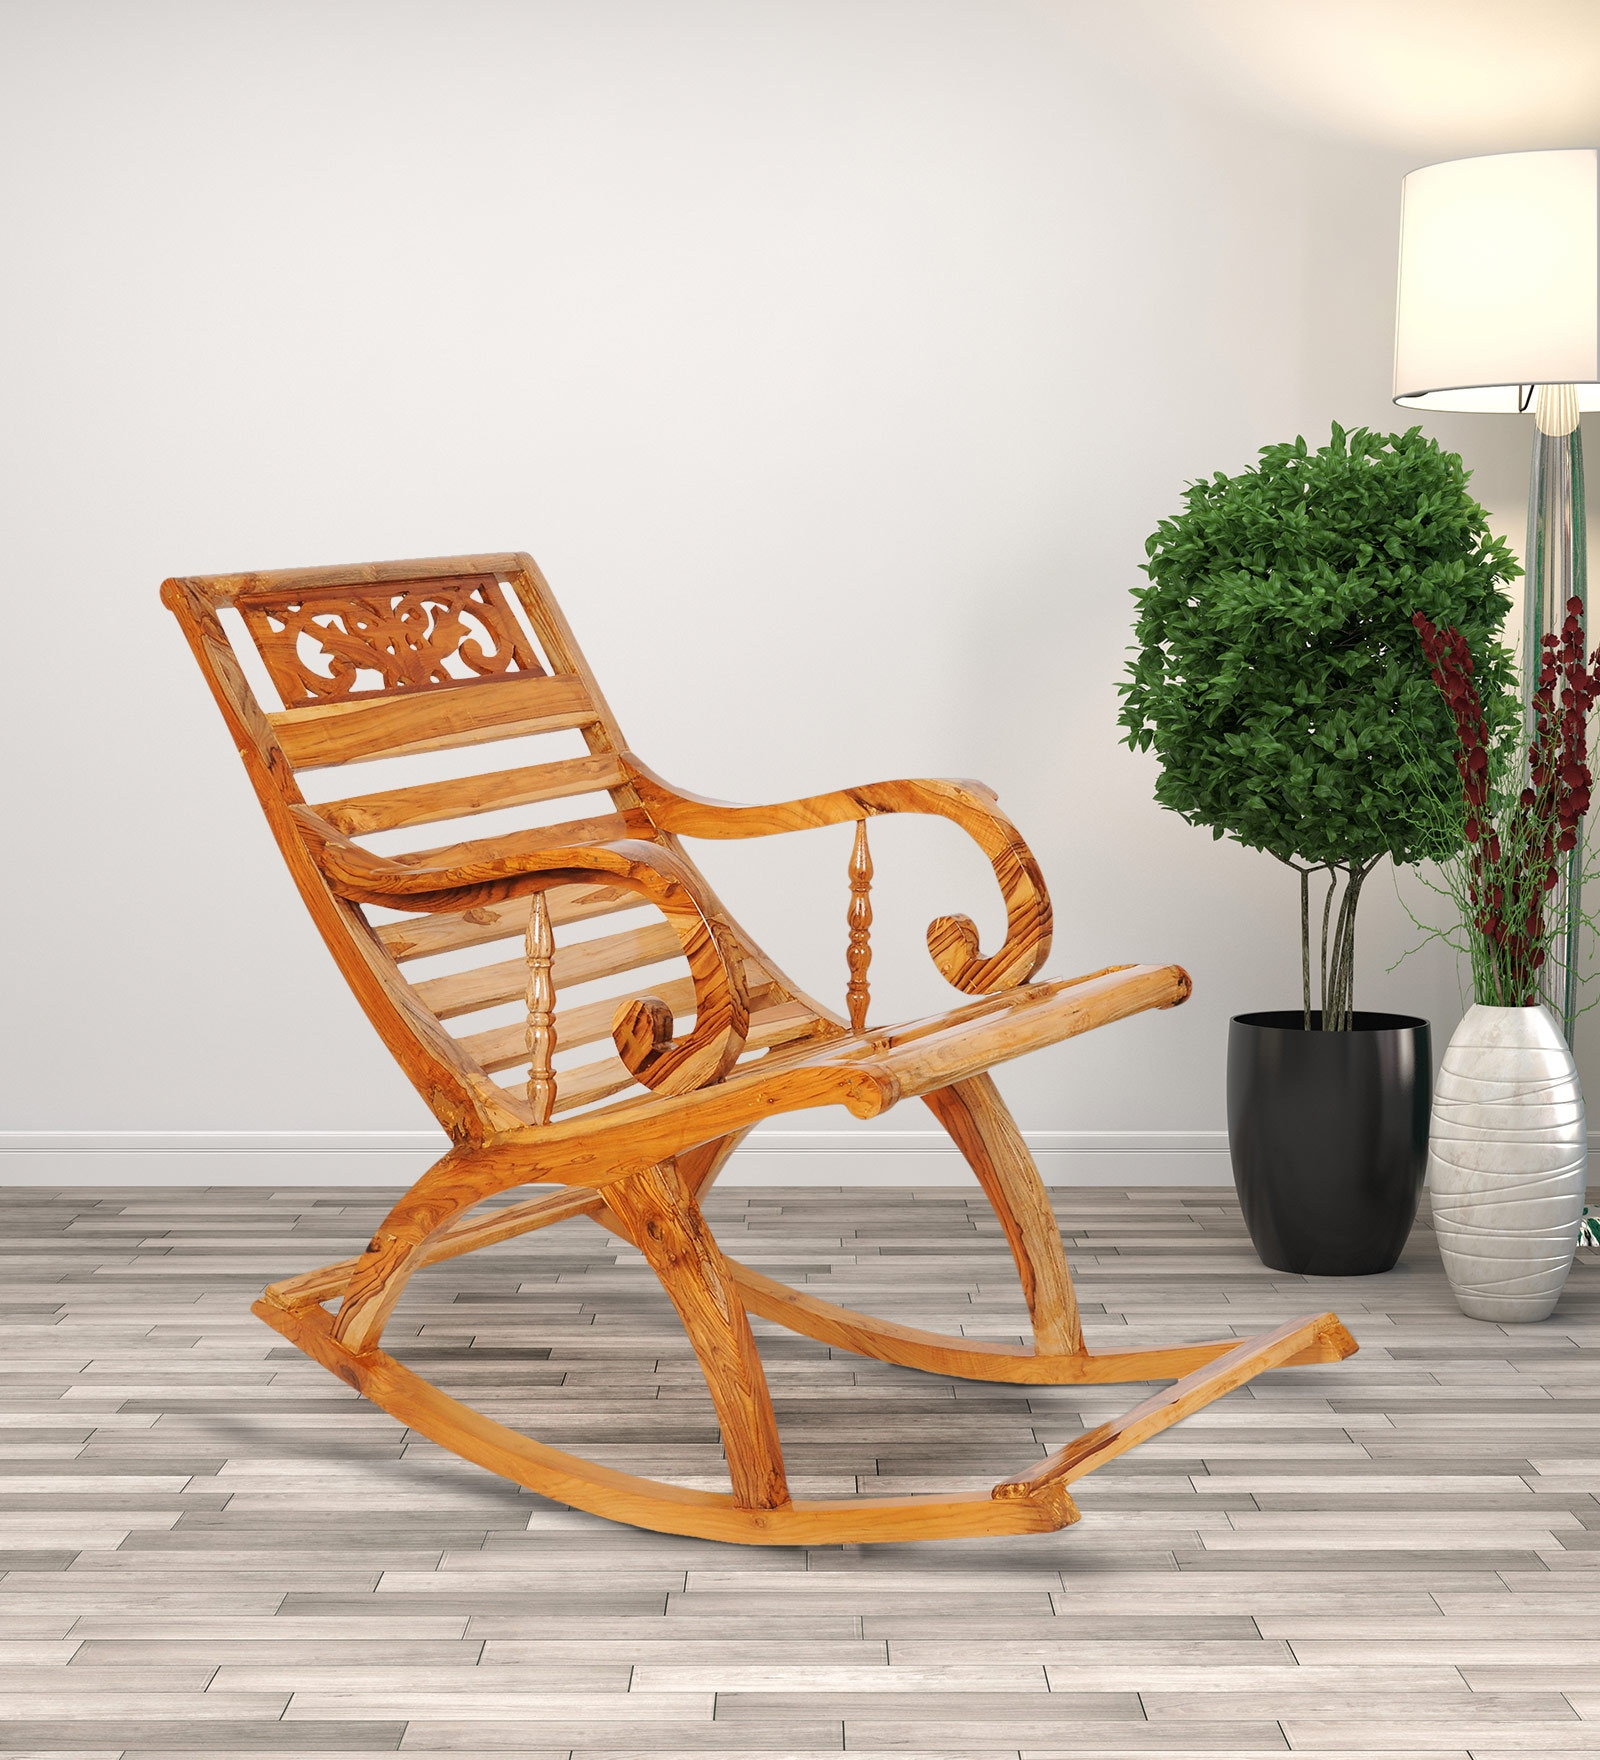 Antique Designed Teakwood Rocking Chair In Natural Finish By Confortofurnishing Buy Online In Aruba Confortofurnishing Products In Aruba See Prices Reviews And Free Delivery Over 120 ƒ Desertcart